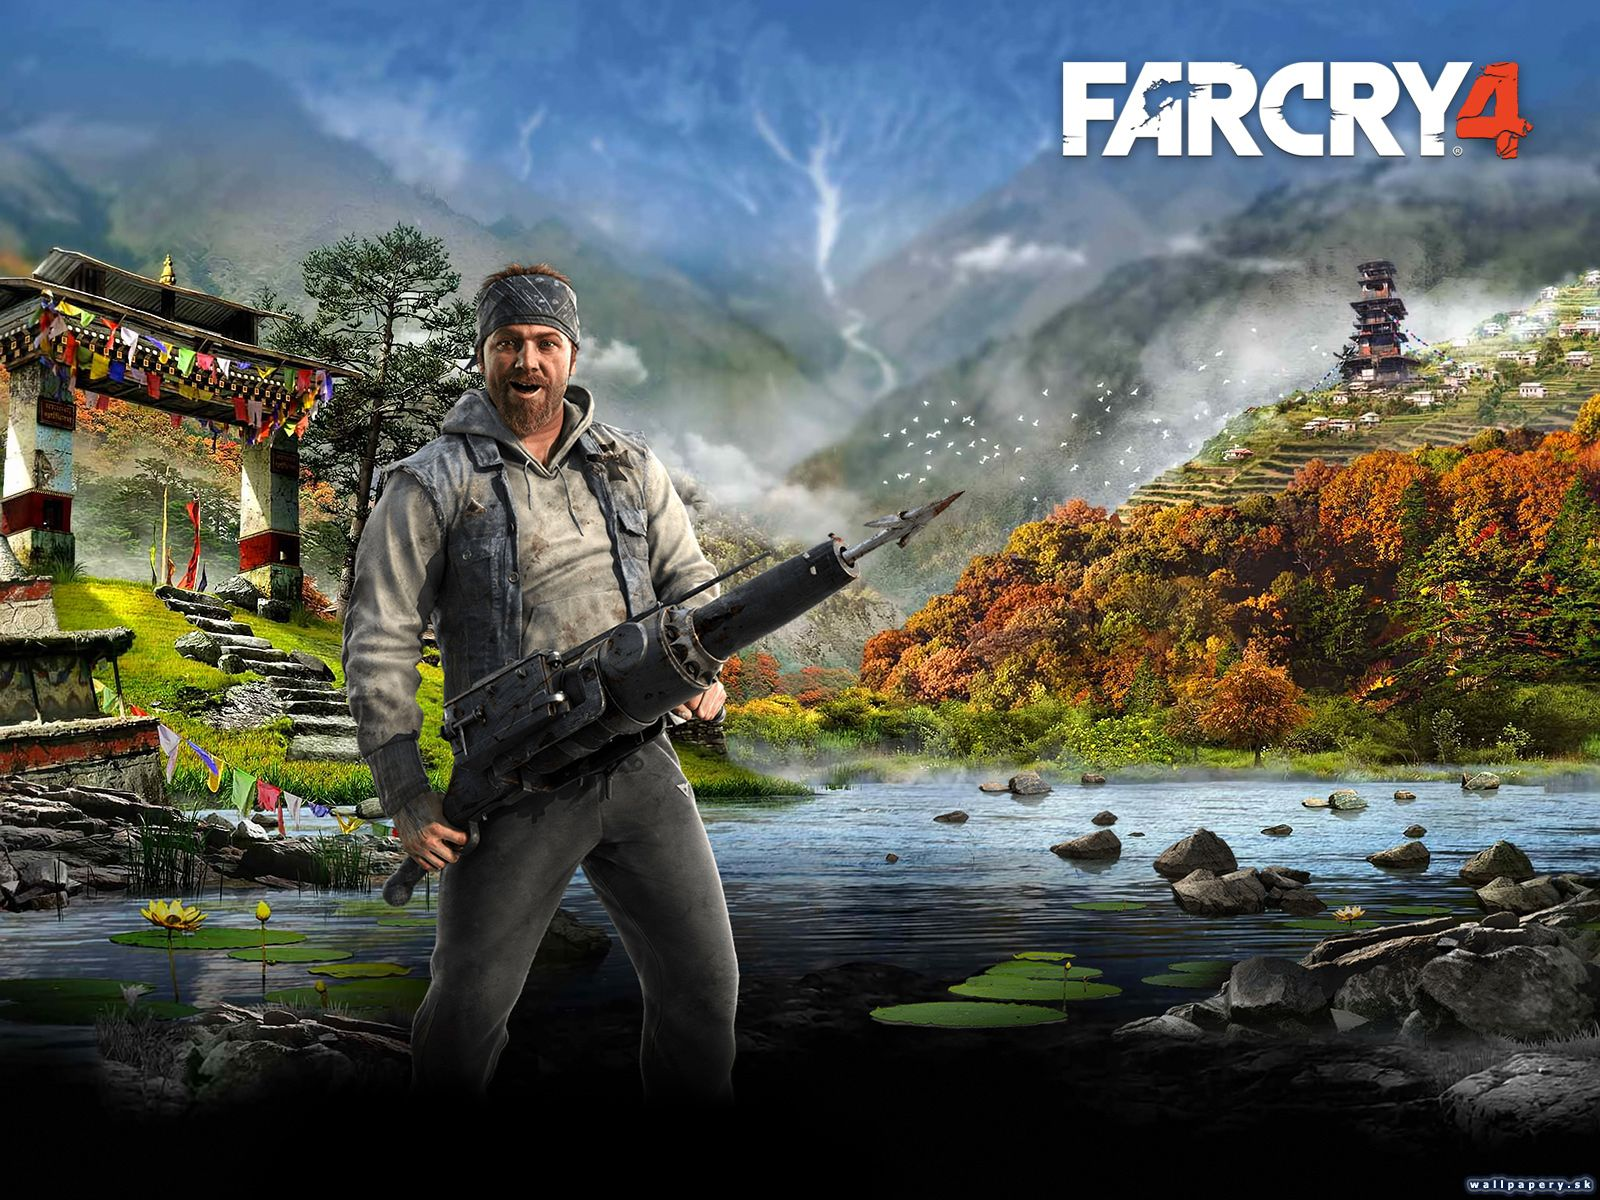 Far Cry 4 My Little Friend Background Image Far Cry 4 Background Images Photo